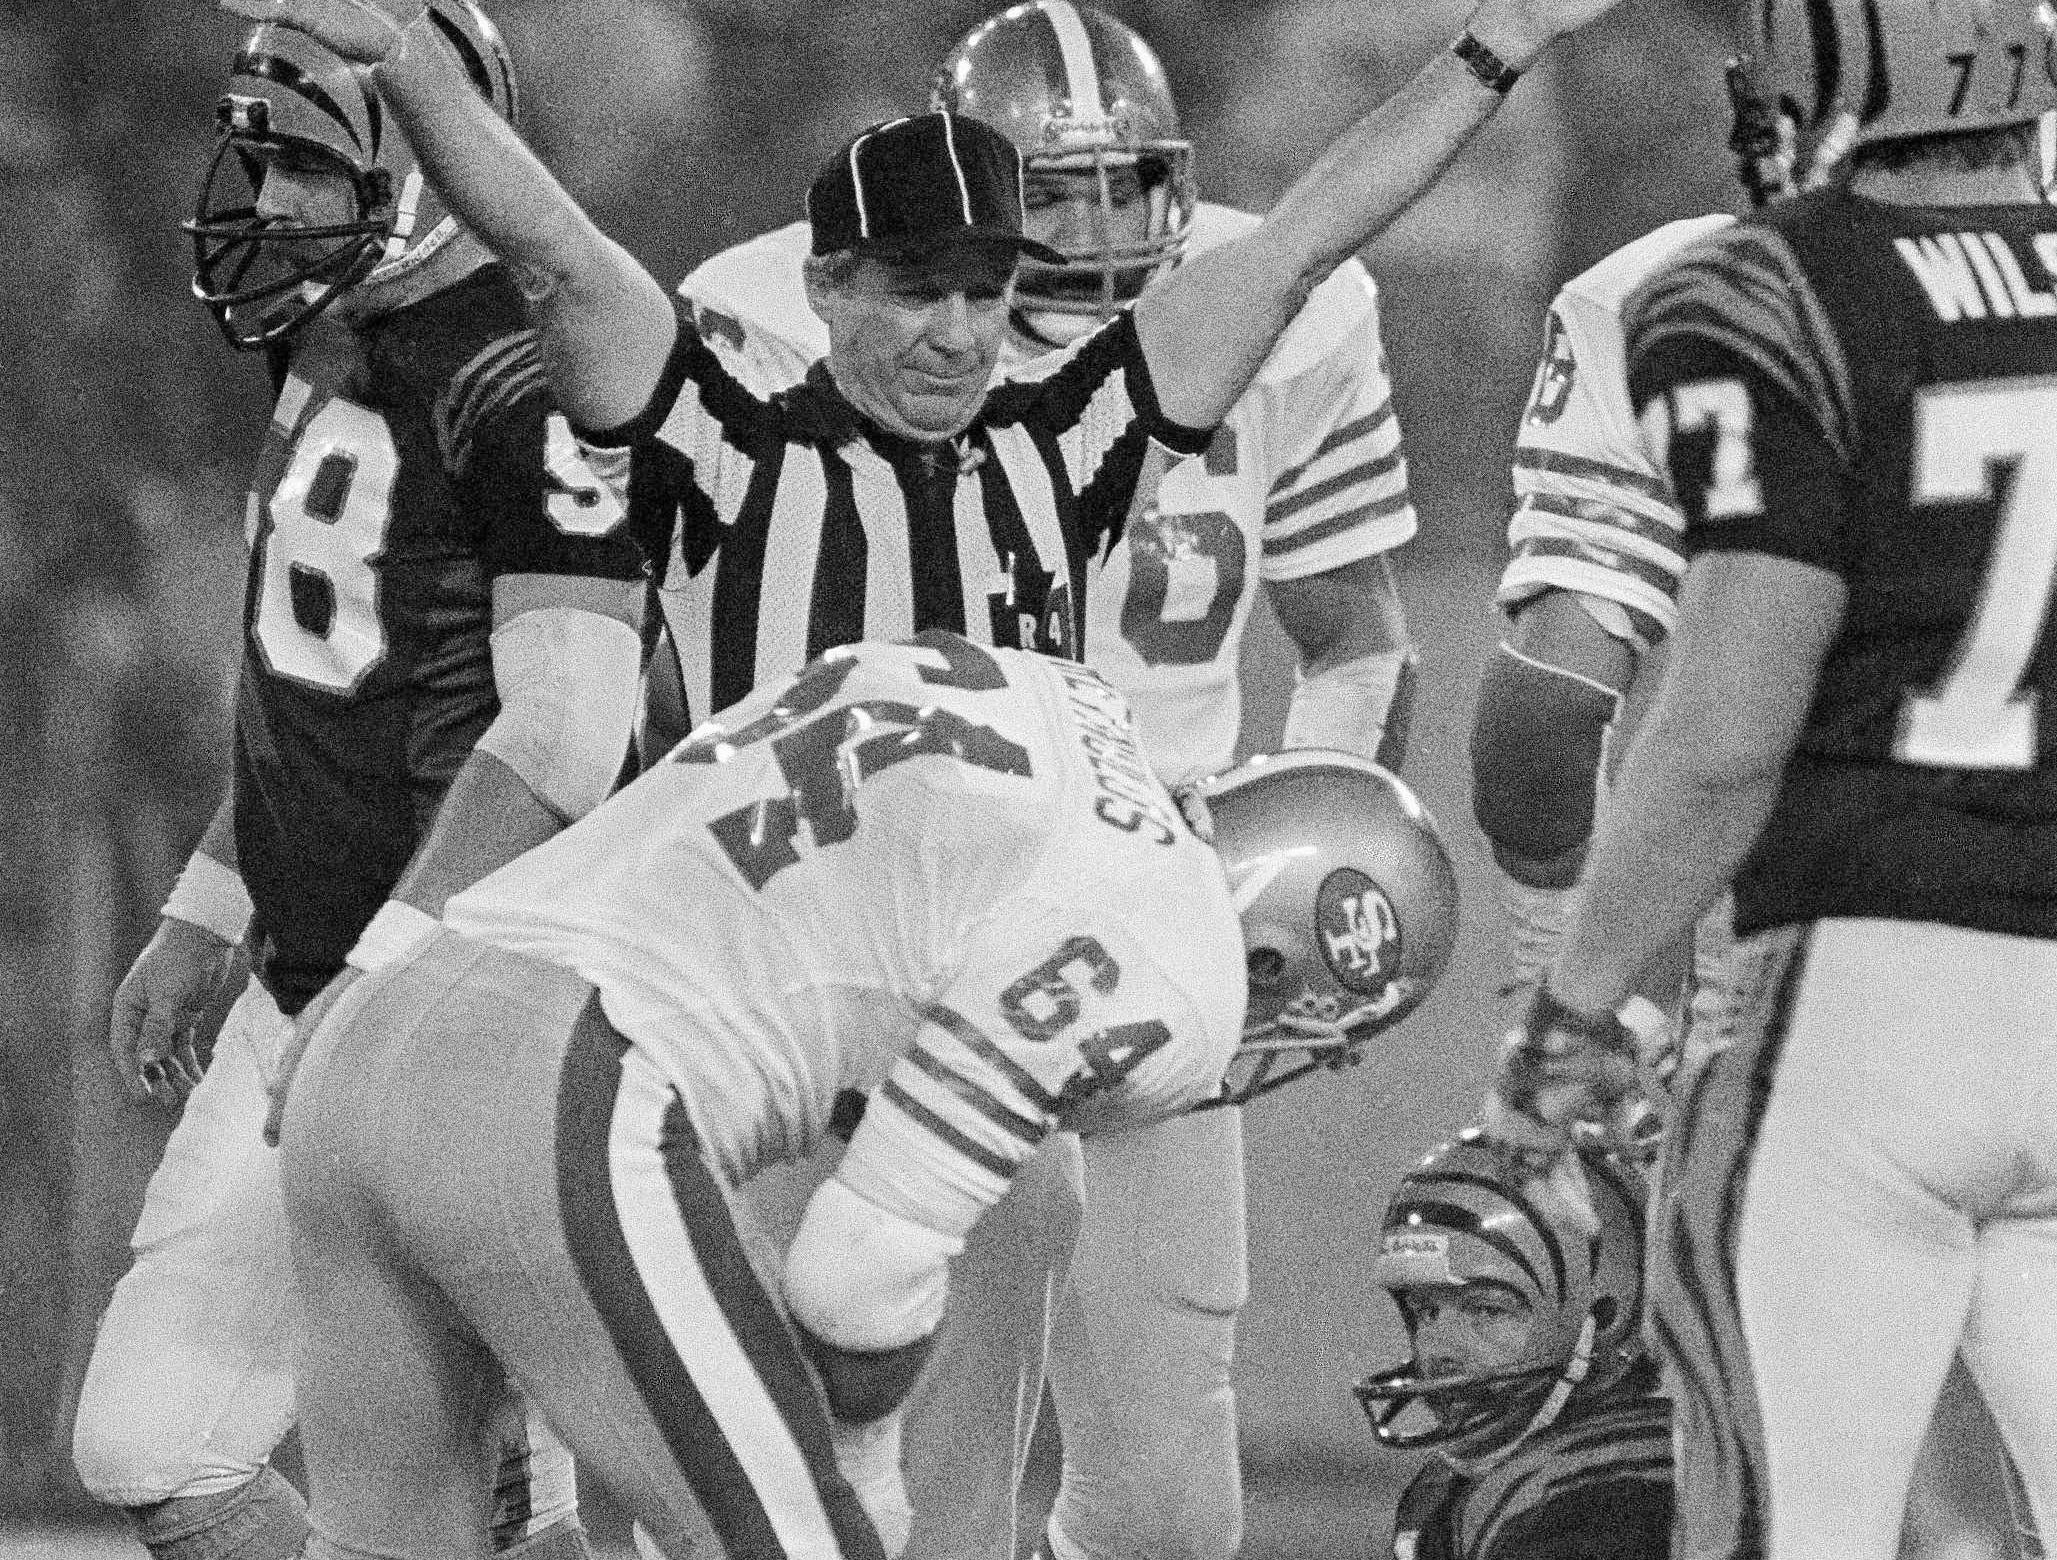 Cincinnati Bengals quarterback Ken Anderson (14) gets a word from San Francisco 49ers linebacker Jack Reynolds (64) after being sacked in the third quarter, Sunday, Jan. 25, 1982 in the Pontiac Silverdome.